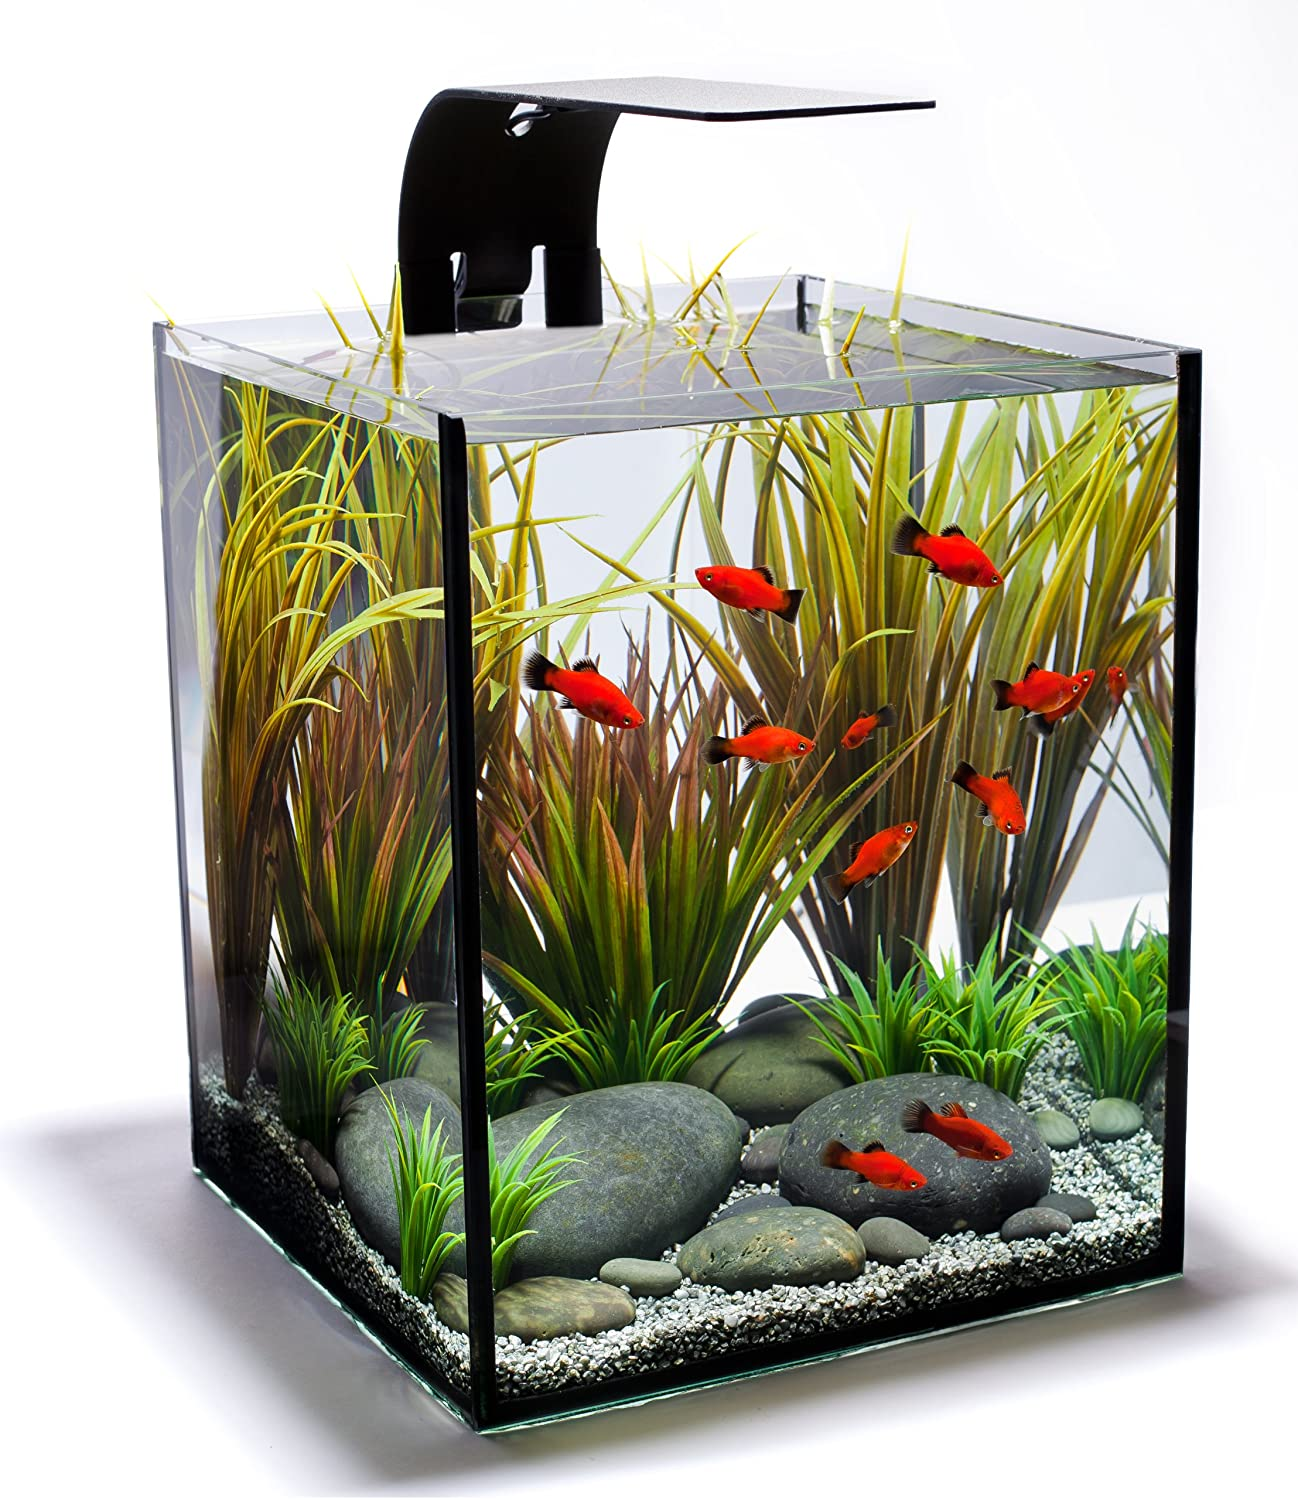 Modern cool small fish tanks for the office desk my dog for Amazon fish tanks for sale